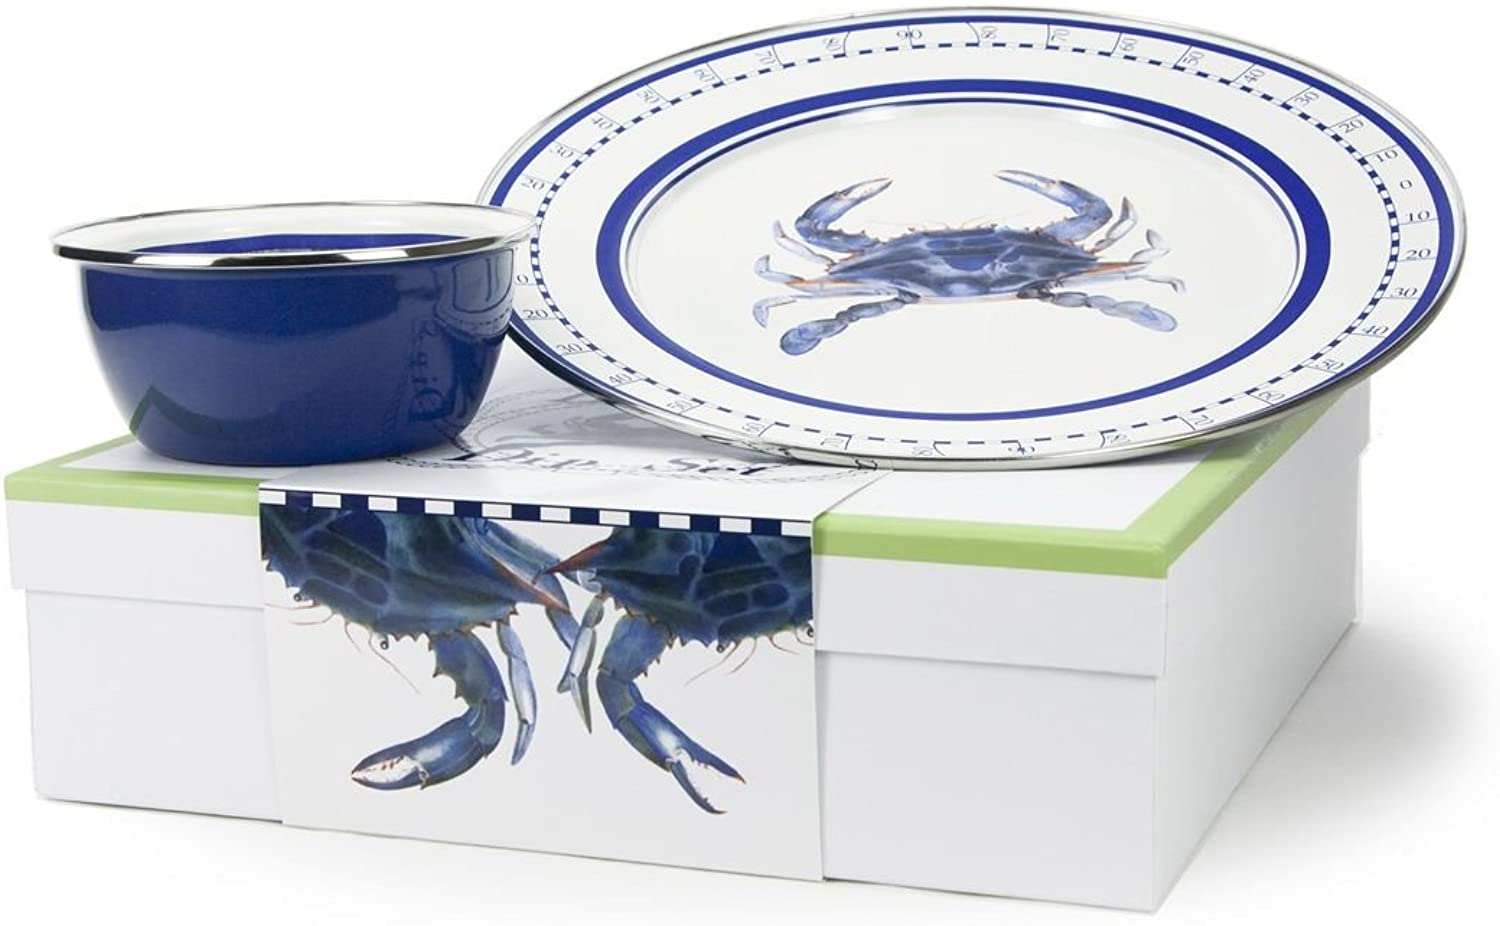 Enamelware, bluee Crab Collection, 2-piece giftboxed set includes 12.5 inch Charger & 3 cup Salad Bowl, 13.5 x 13.5 x 4 inch gift box